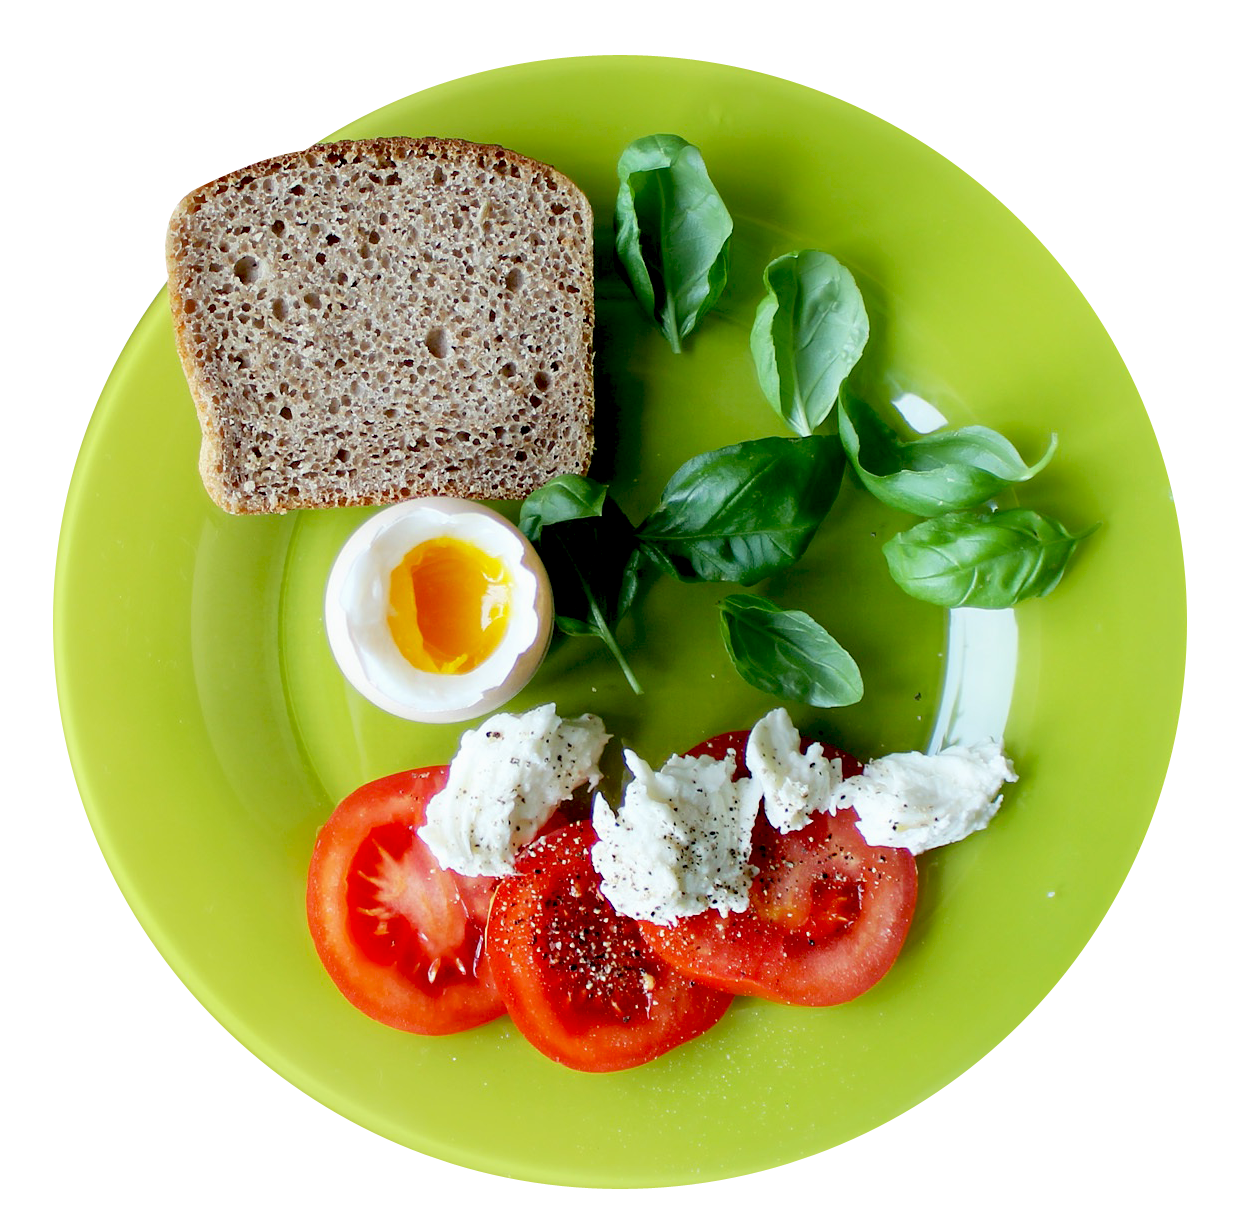 Food plate png. Top view image purepng